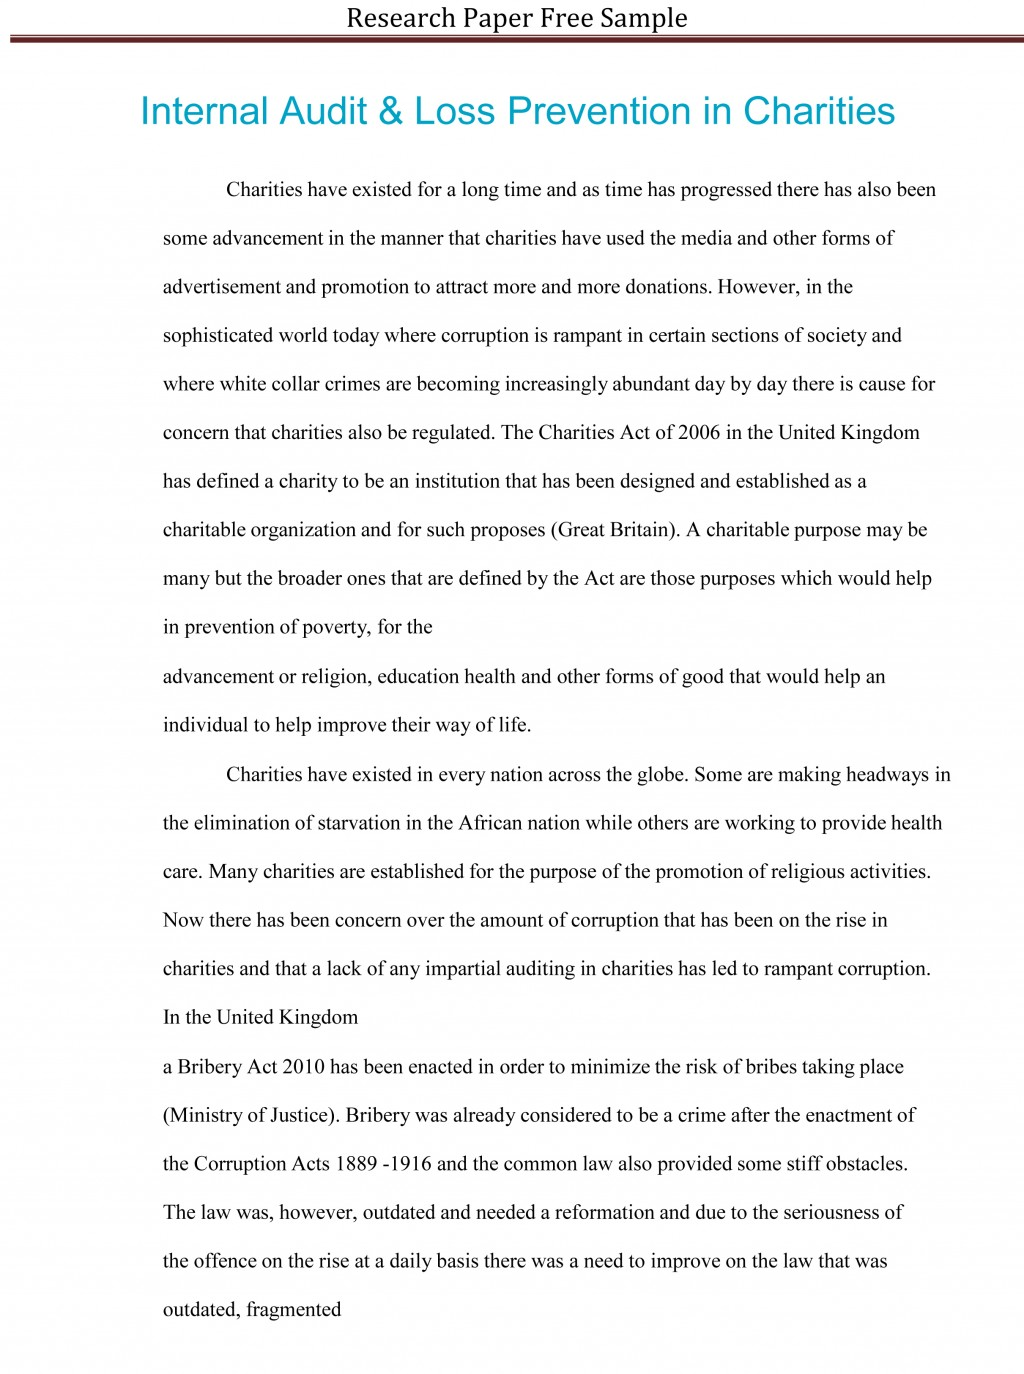 017 Research Paper Sample Argumentative Topics For College Archaicawful English Large